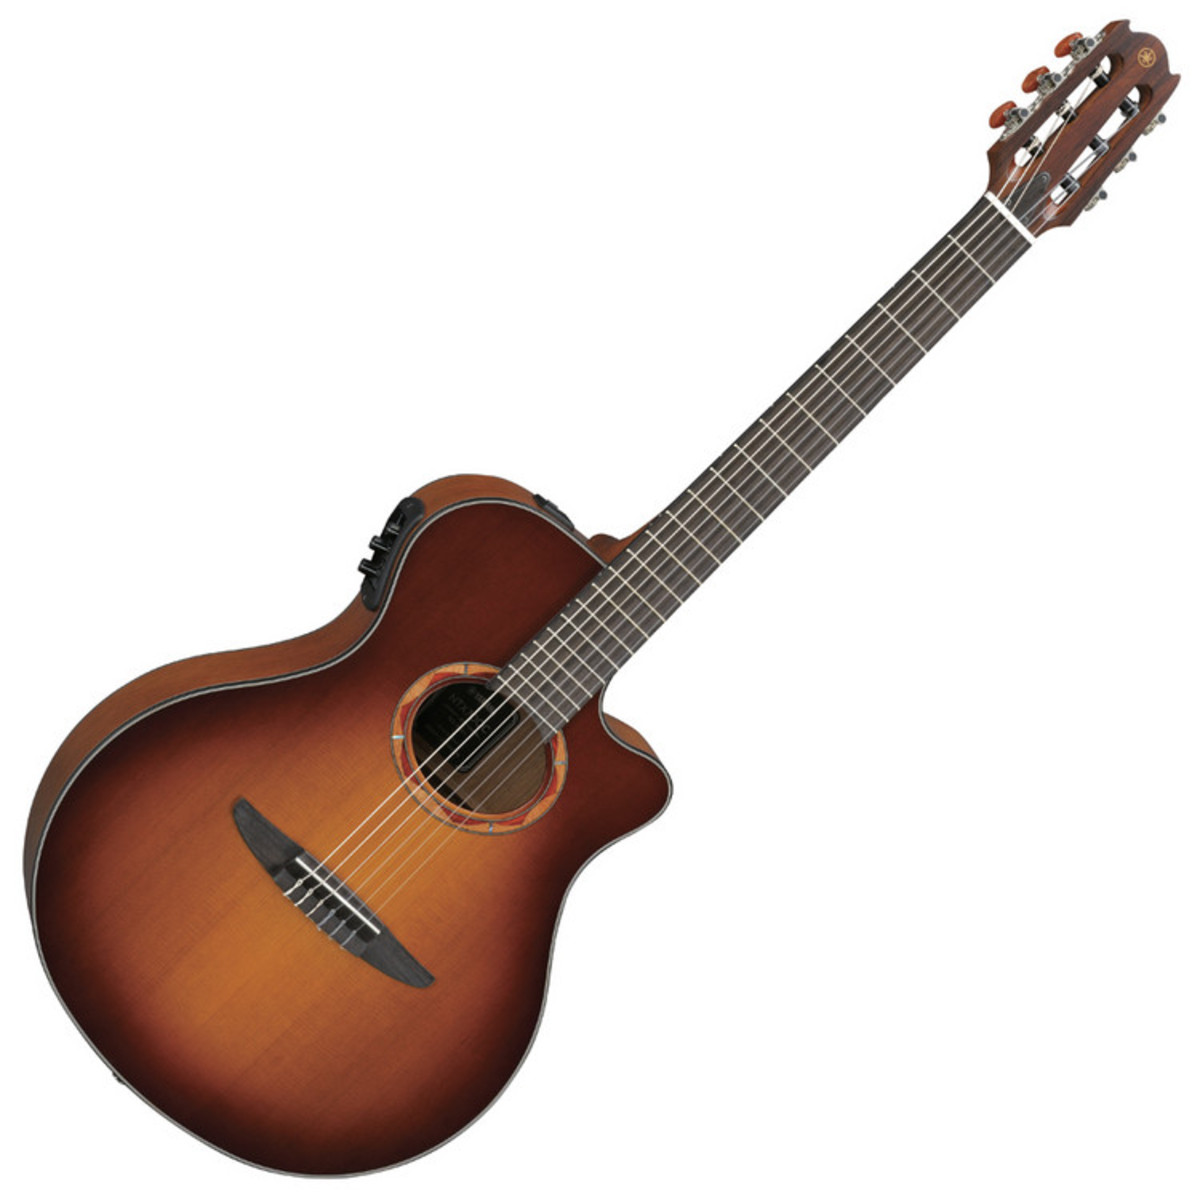 yamaha ntx700cbs classical guitar brown sunburst at gear4music. Black Bedroom Furniture Sets. Home Design Ideas